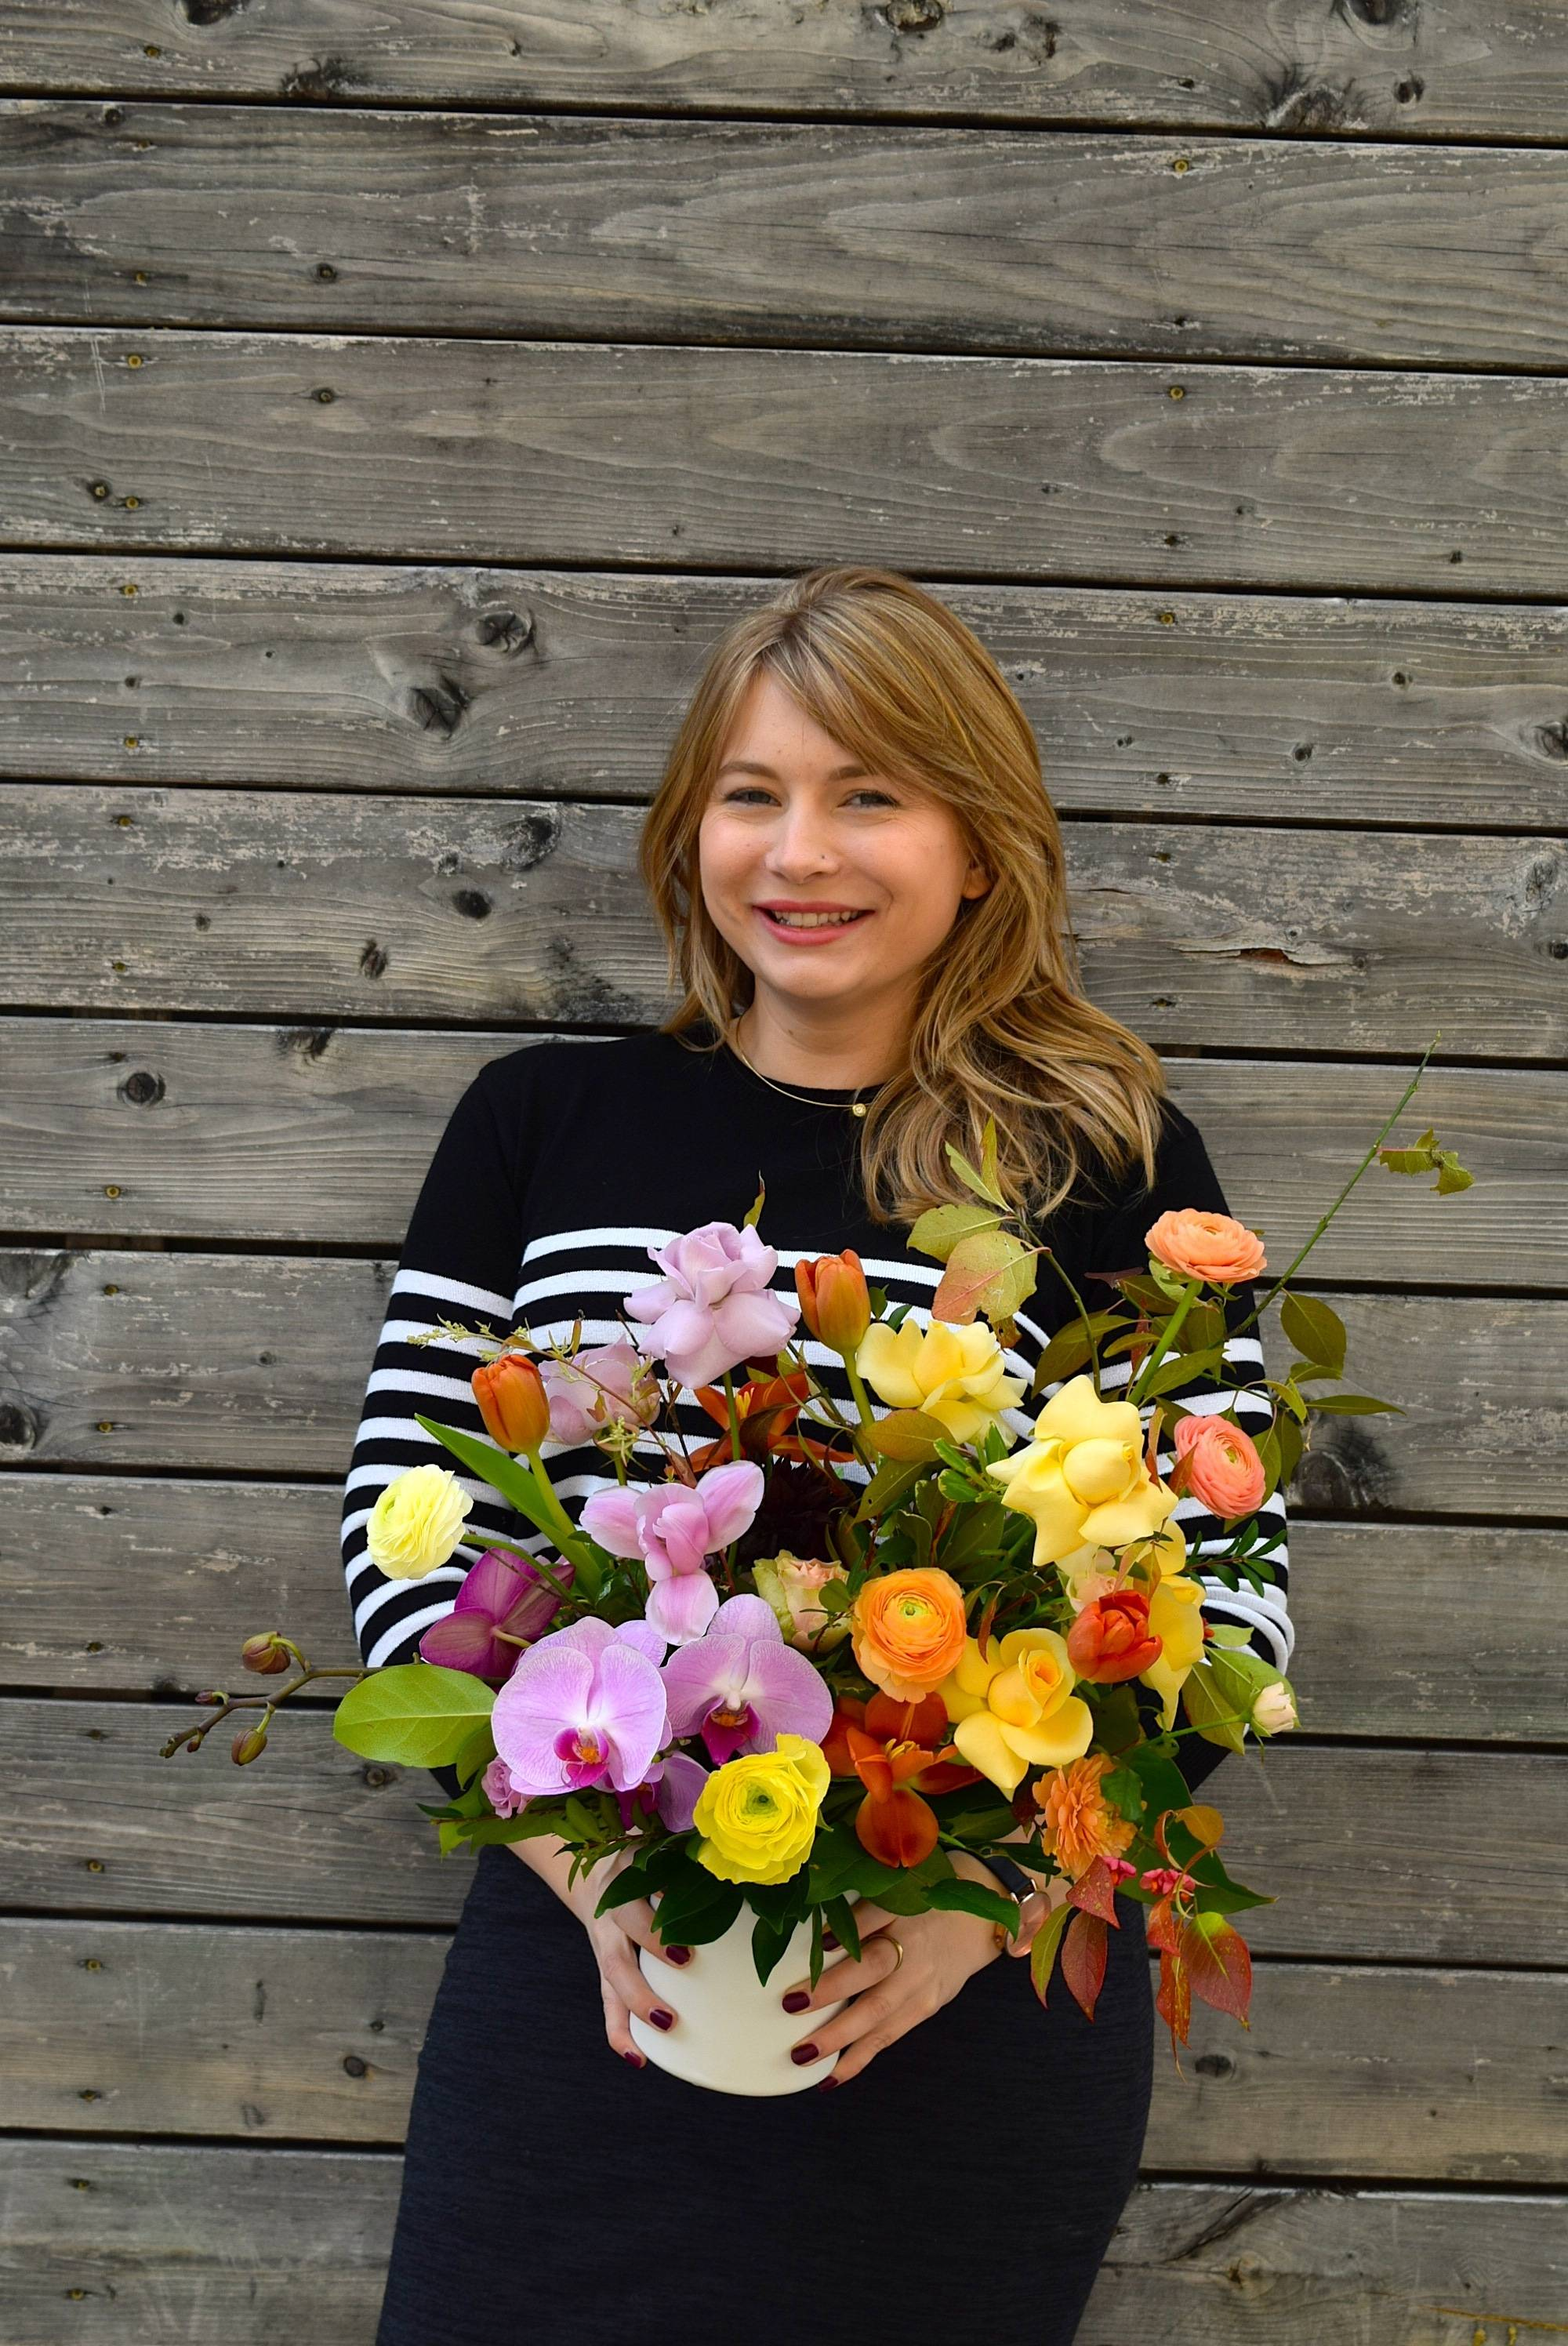 Jennifer Fowlow, Founder of Wild North Flowers holding a floral arrangement